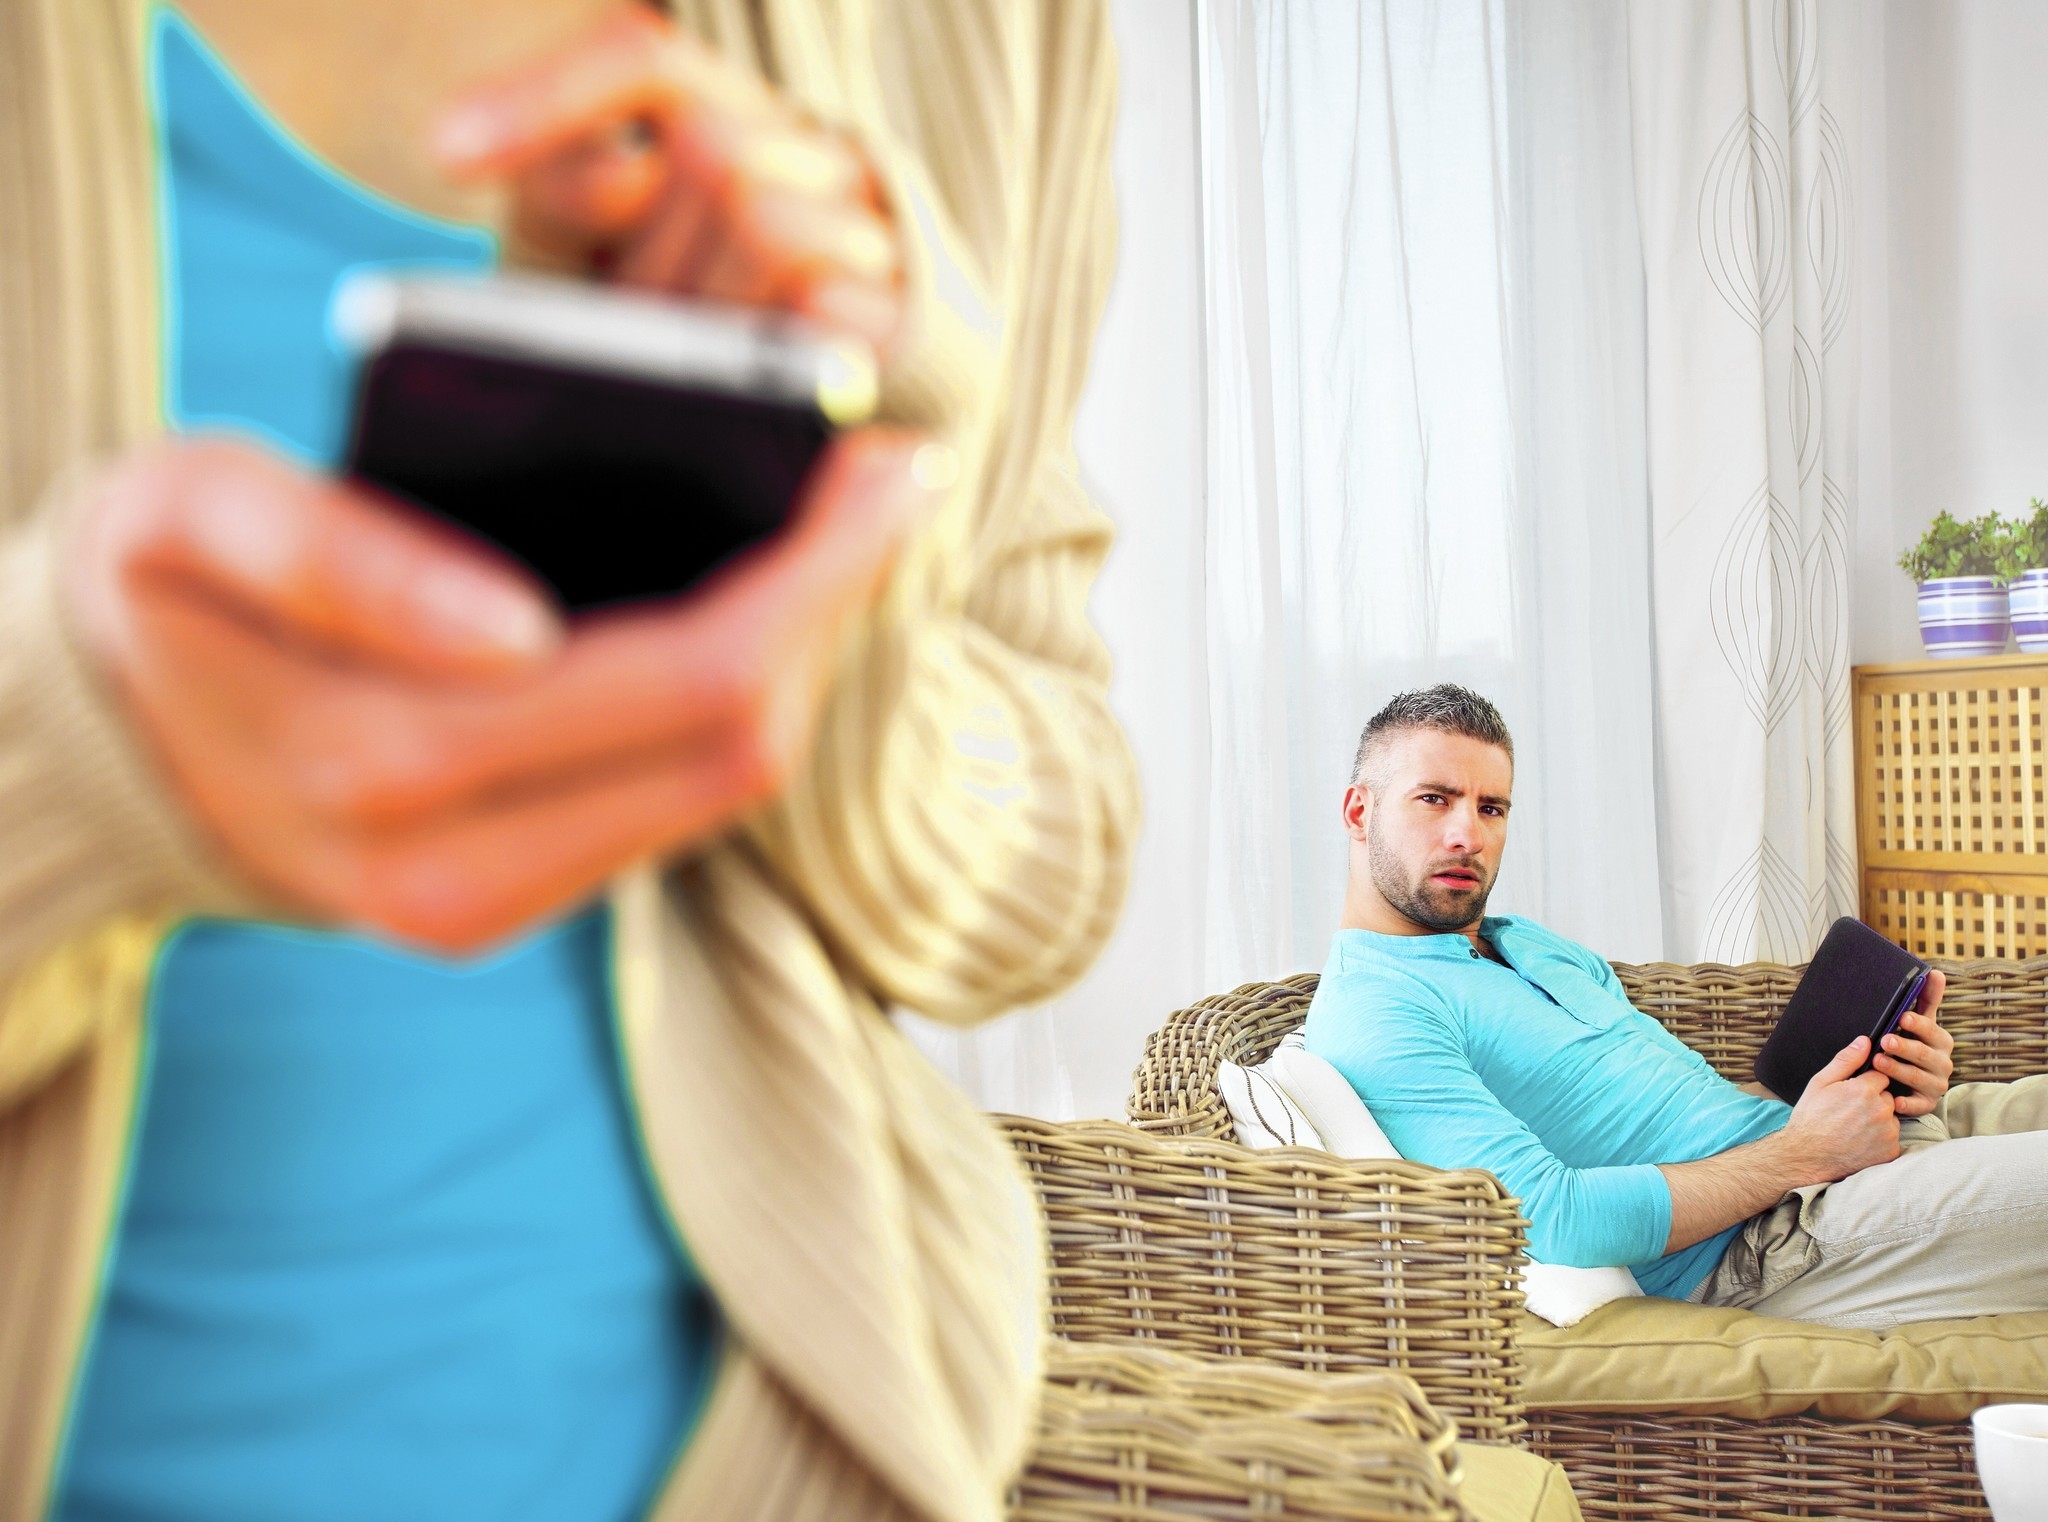 Social media cheating spouse